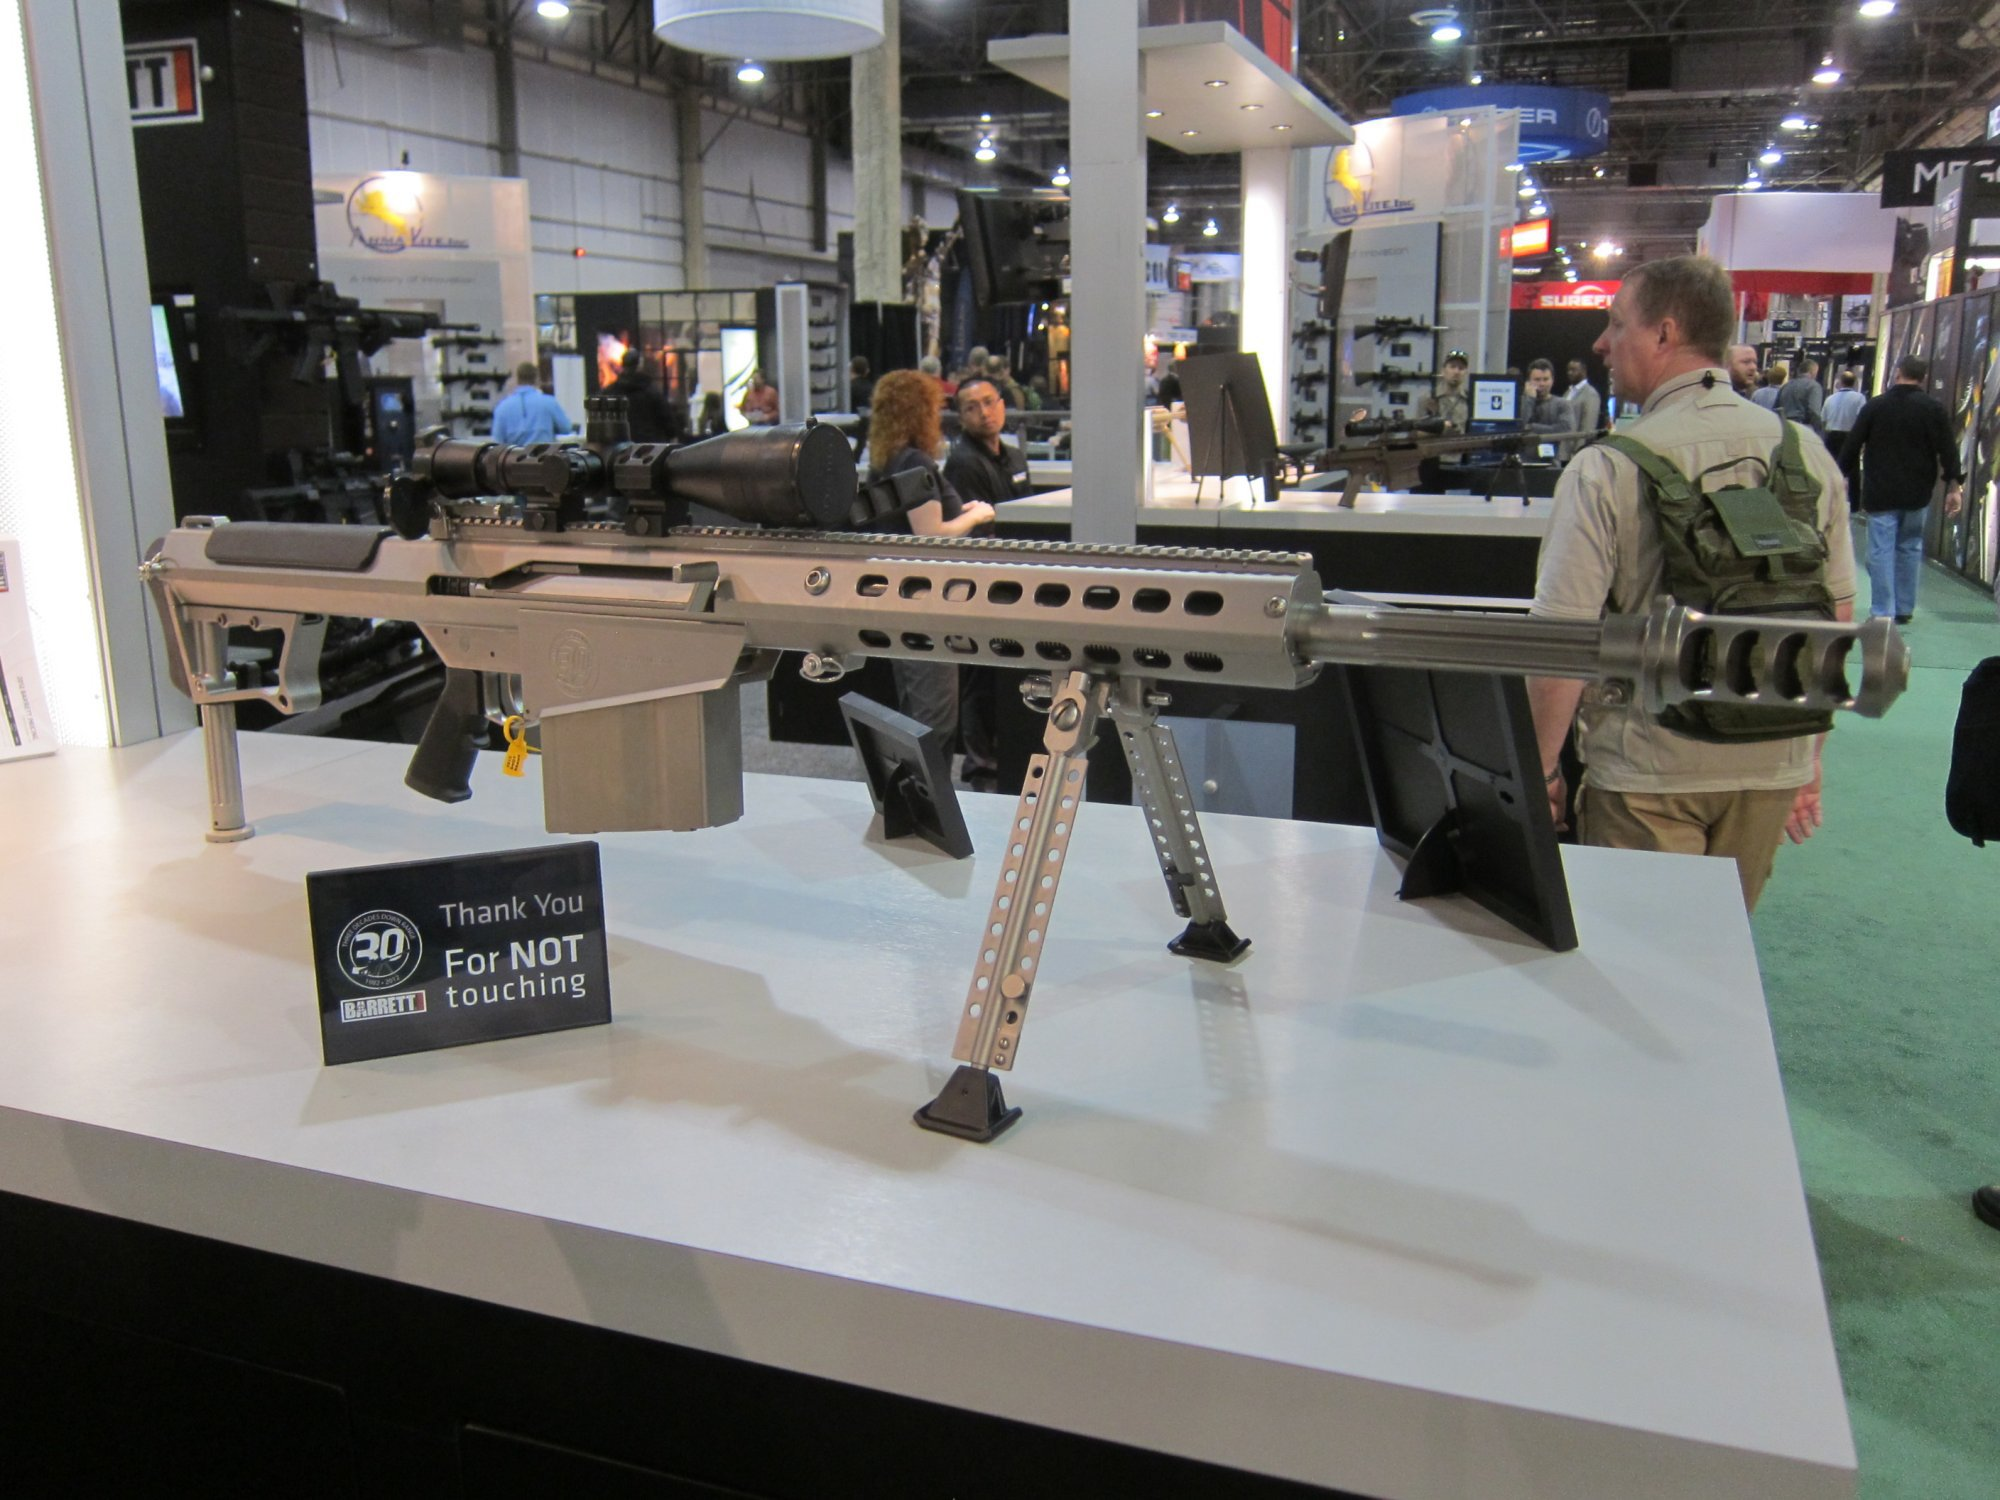 Barrett M107A1 30th-Anniversary Edition Semi-Auto .50 BMG Anti-Materiel Rifle with Robar NP3 Nickel-Teflon Coating Inside and Out! (Video!)